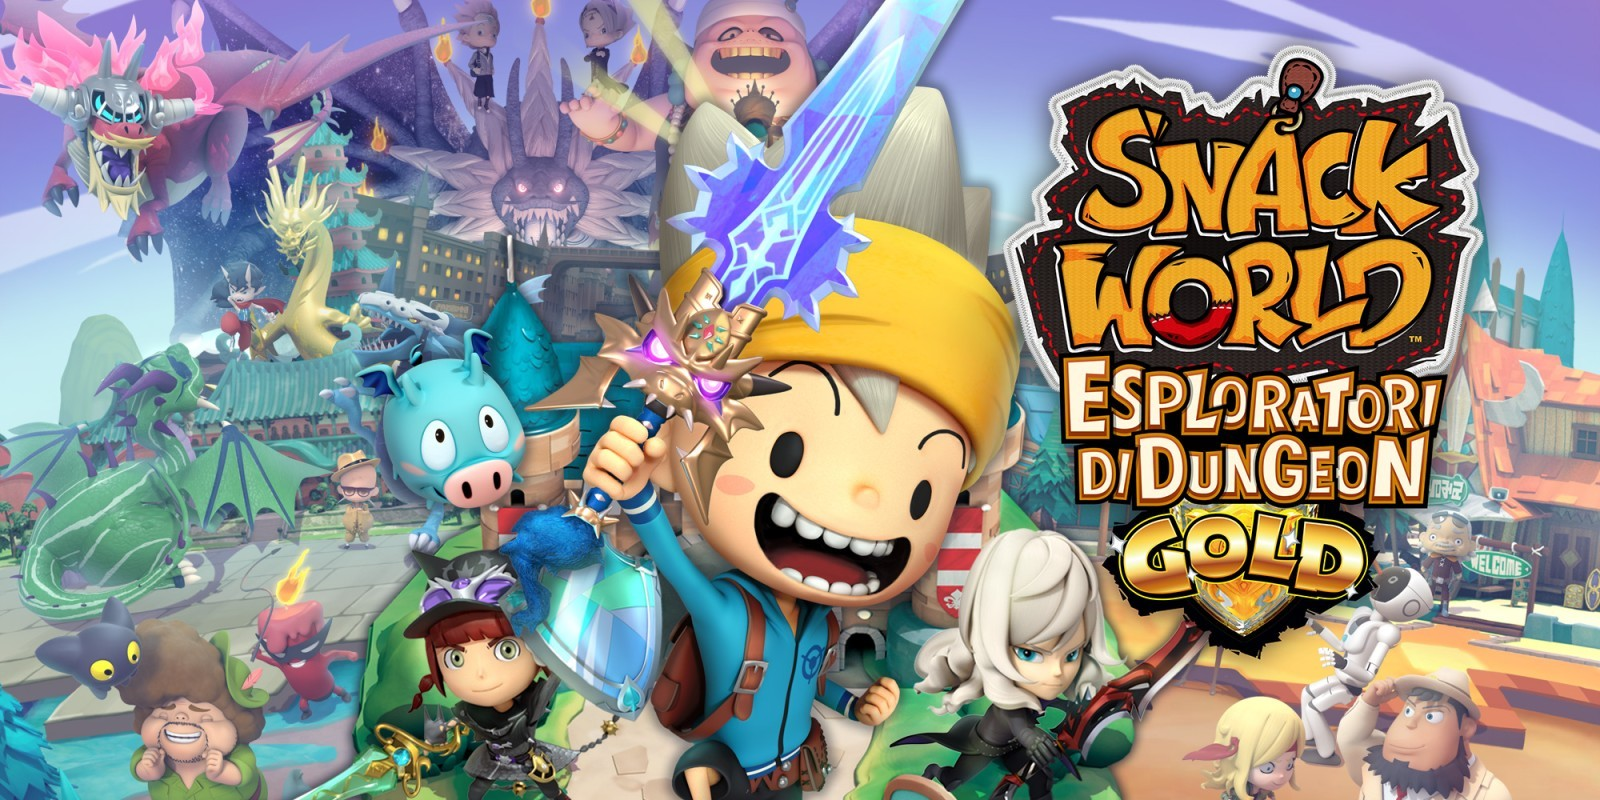 SNACK WORLD:ESPLORATORI DI DUNGEON